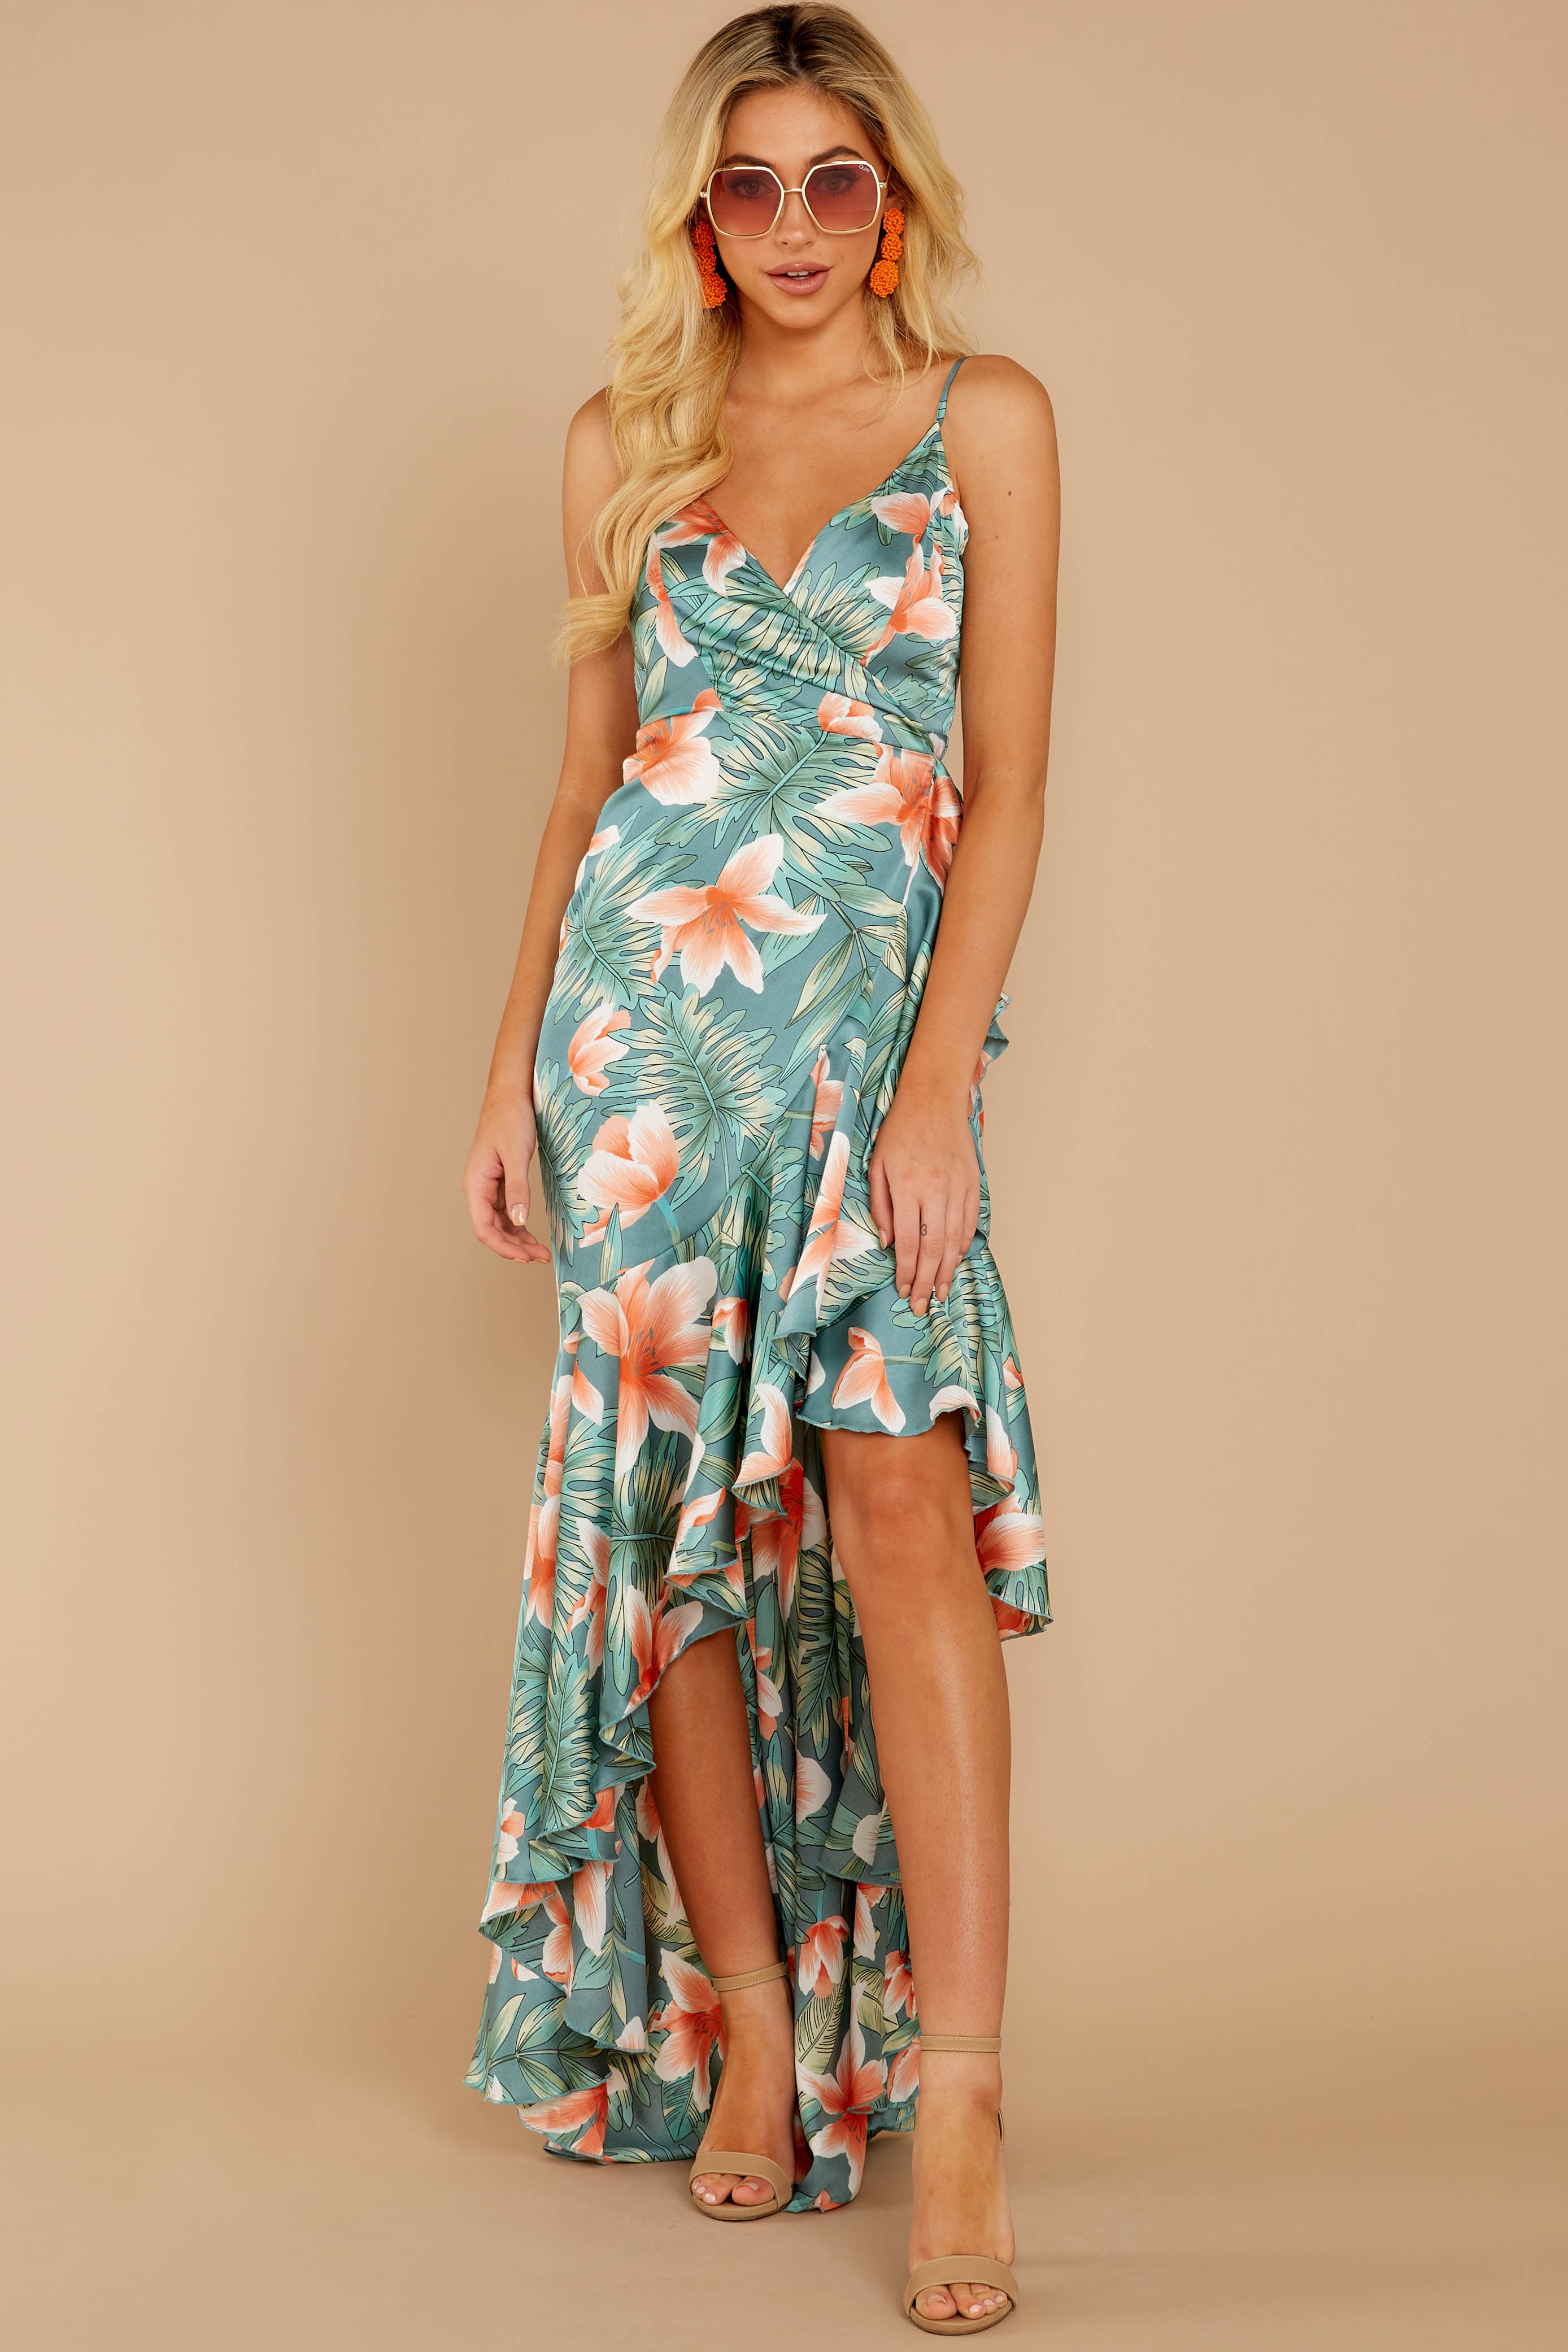 4 Flamenco Dancing Green Tropical Print Maxi Dress at reddressboutique.com